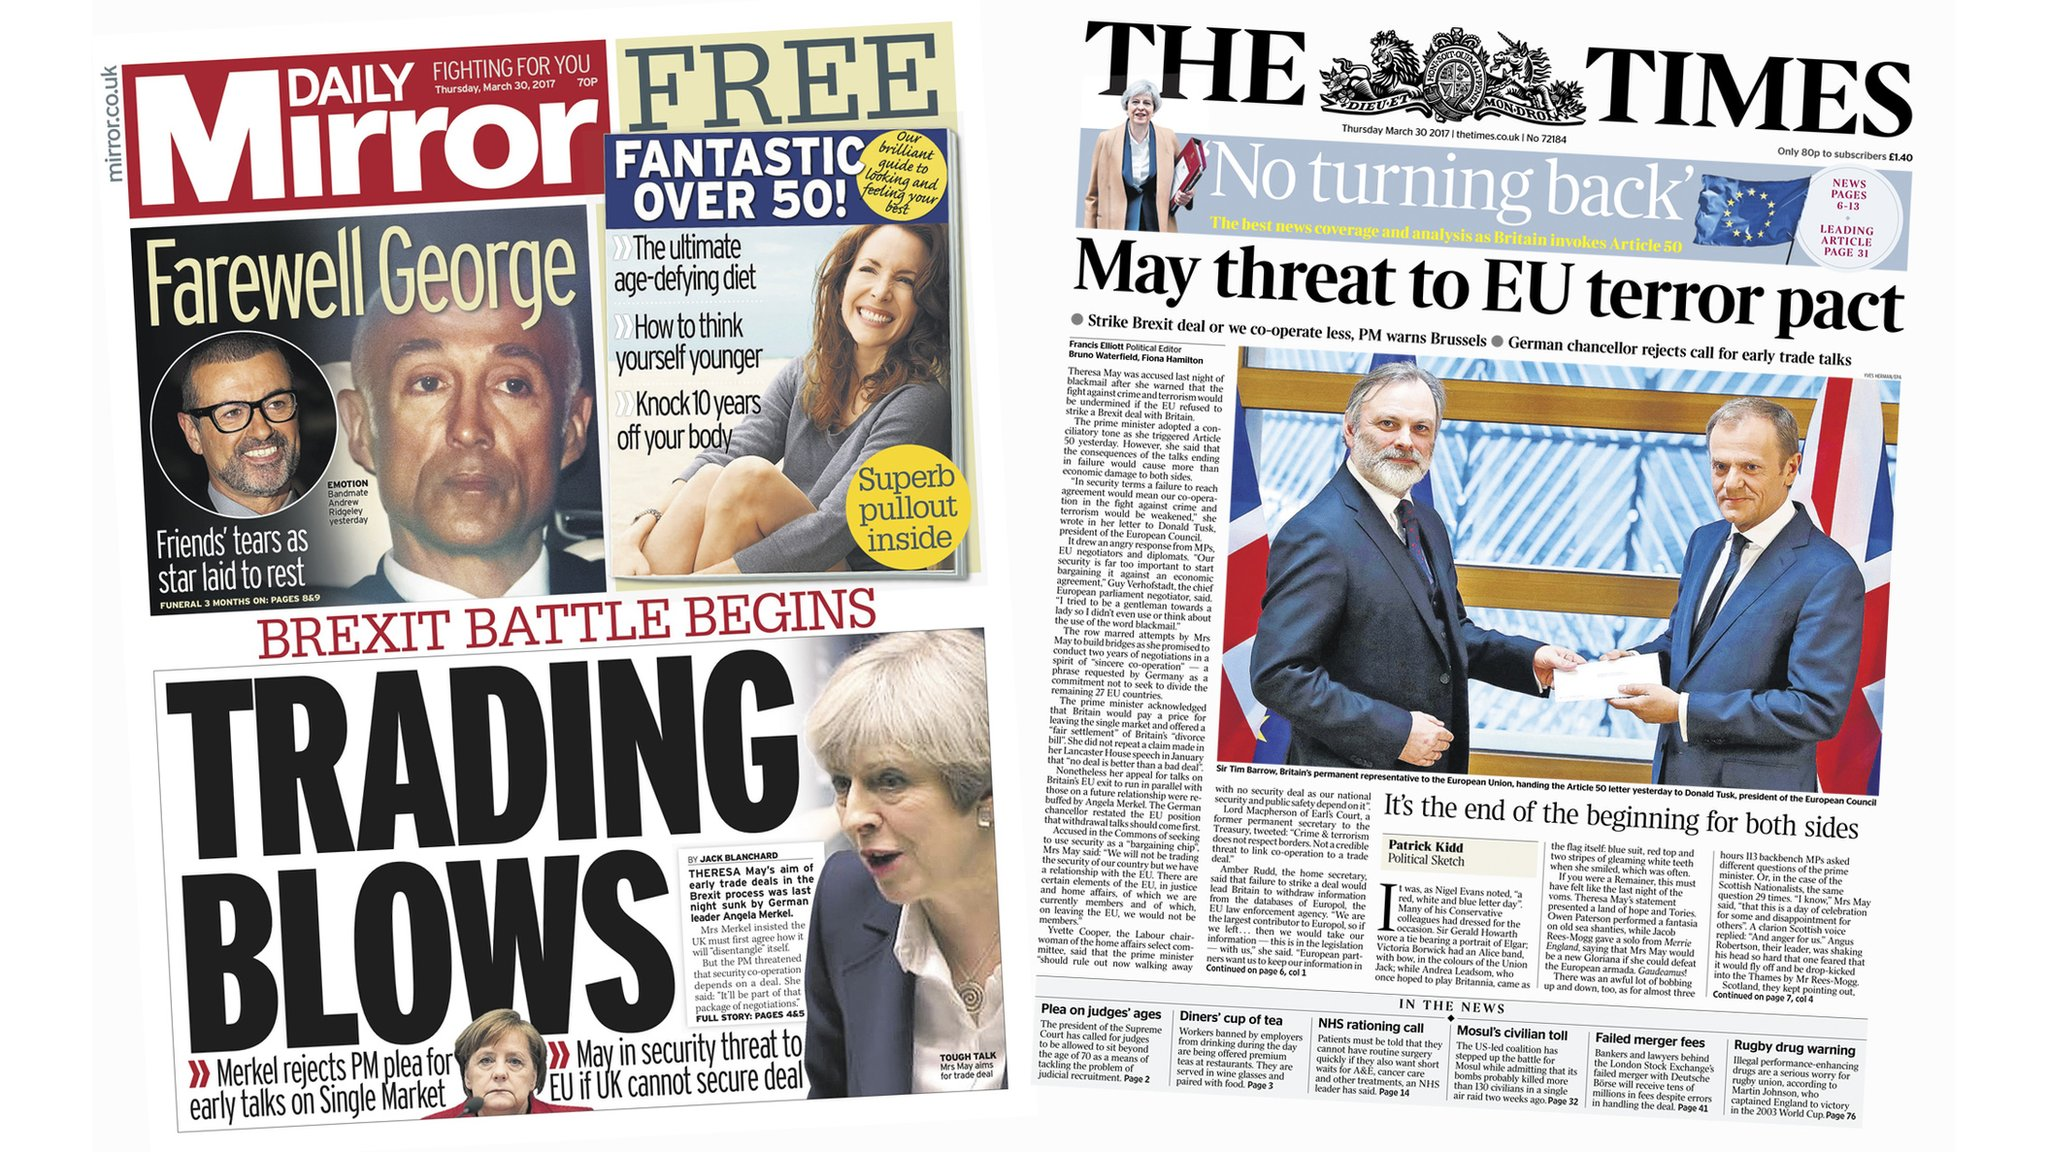 Newspaper headlines: Brexit 'breach' begins with a letter